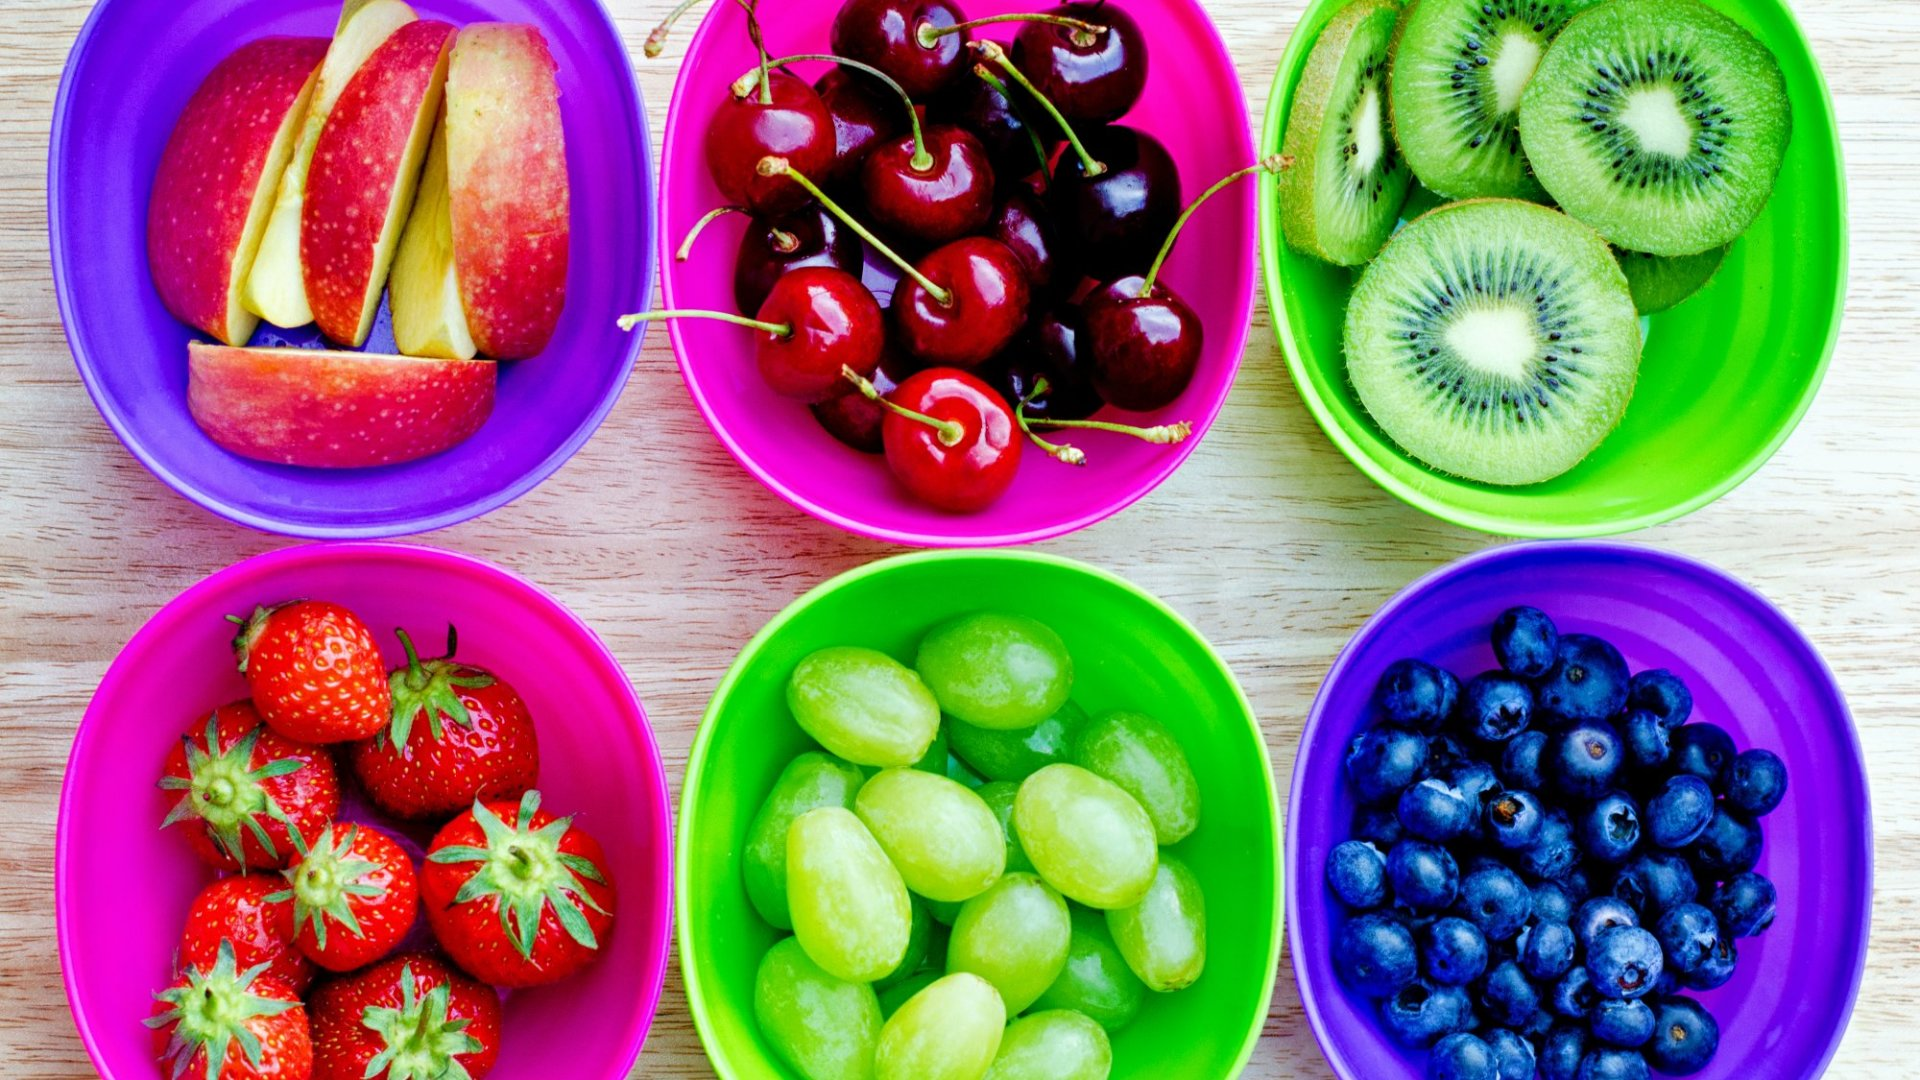 Is your leadership team producing good fruit in others?